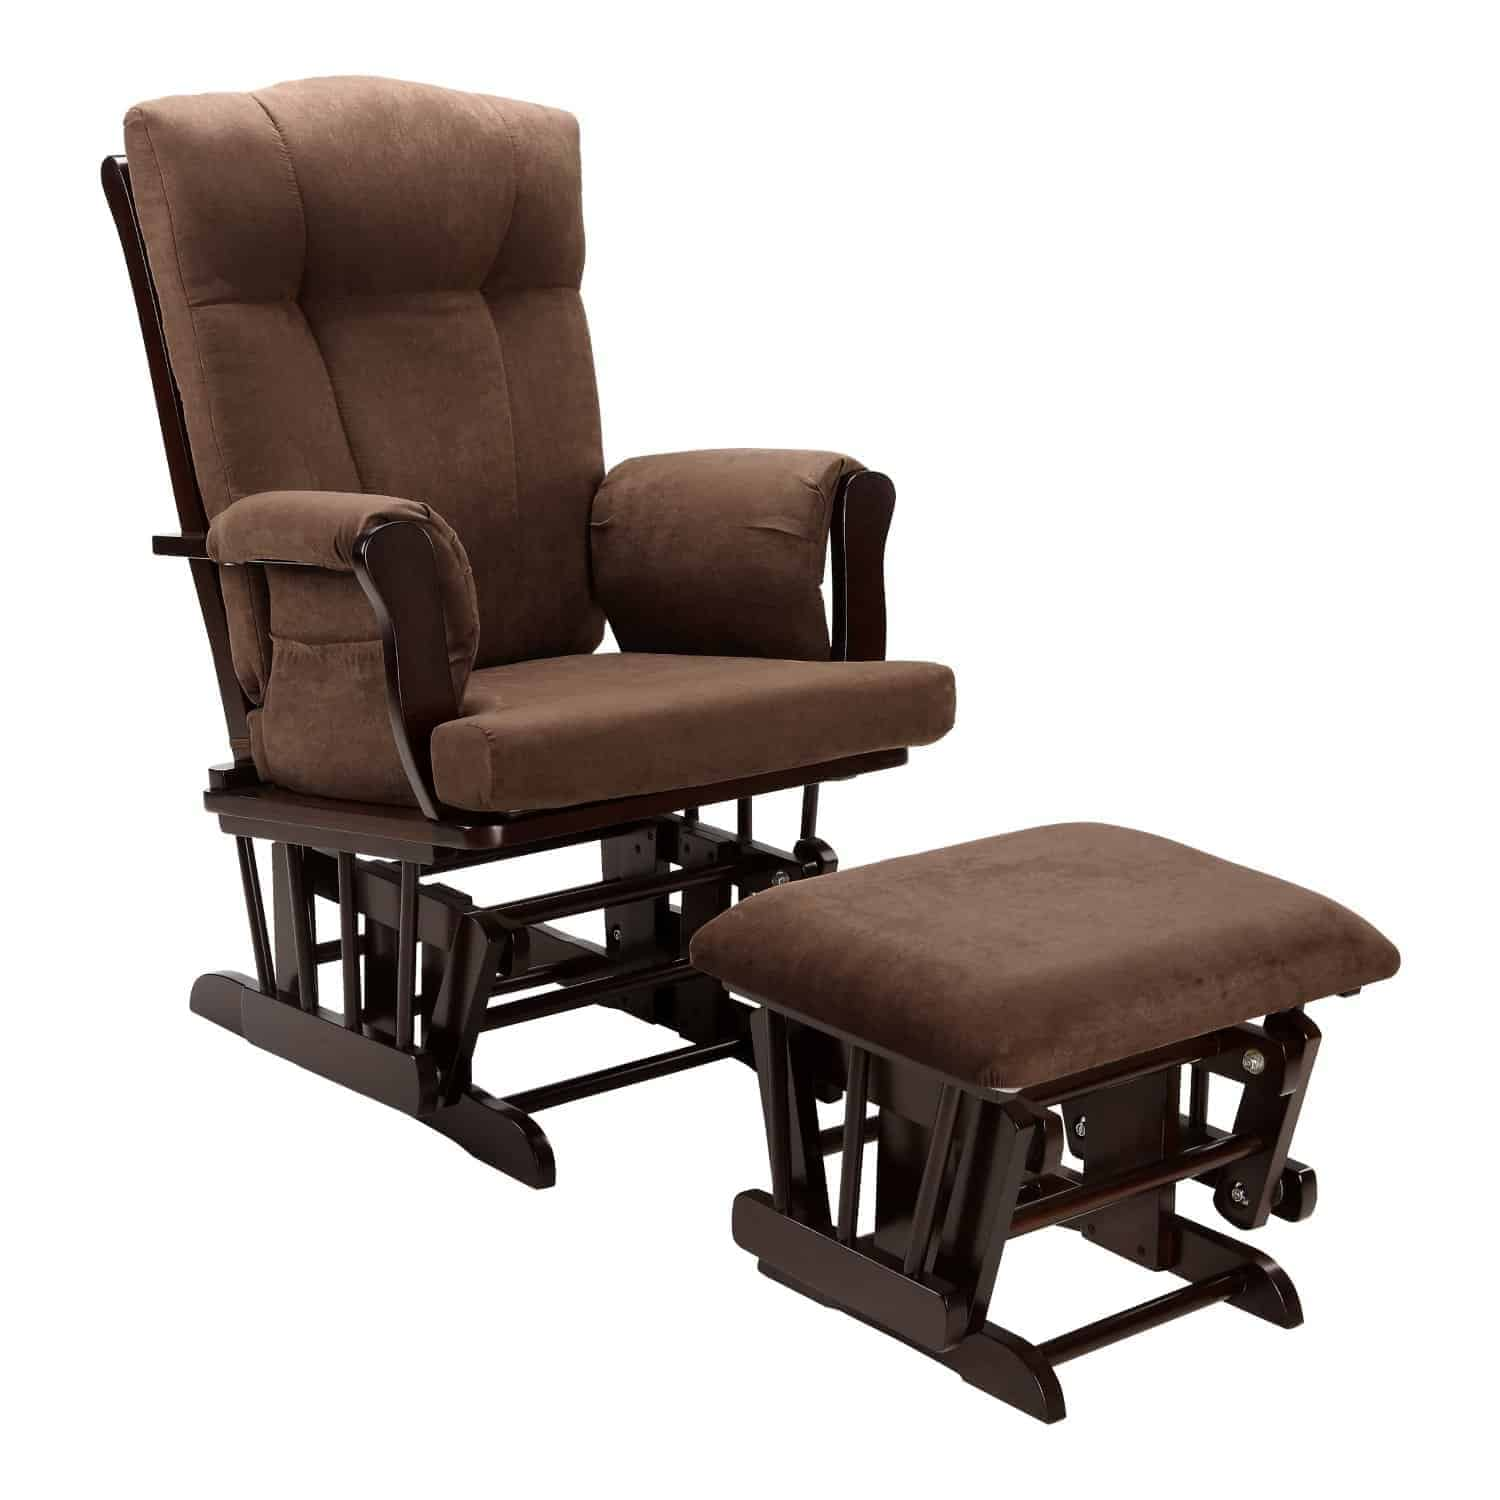 Best Nursing Chairs Best Rocking Chairs For The Nursery